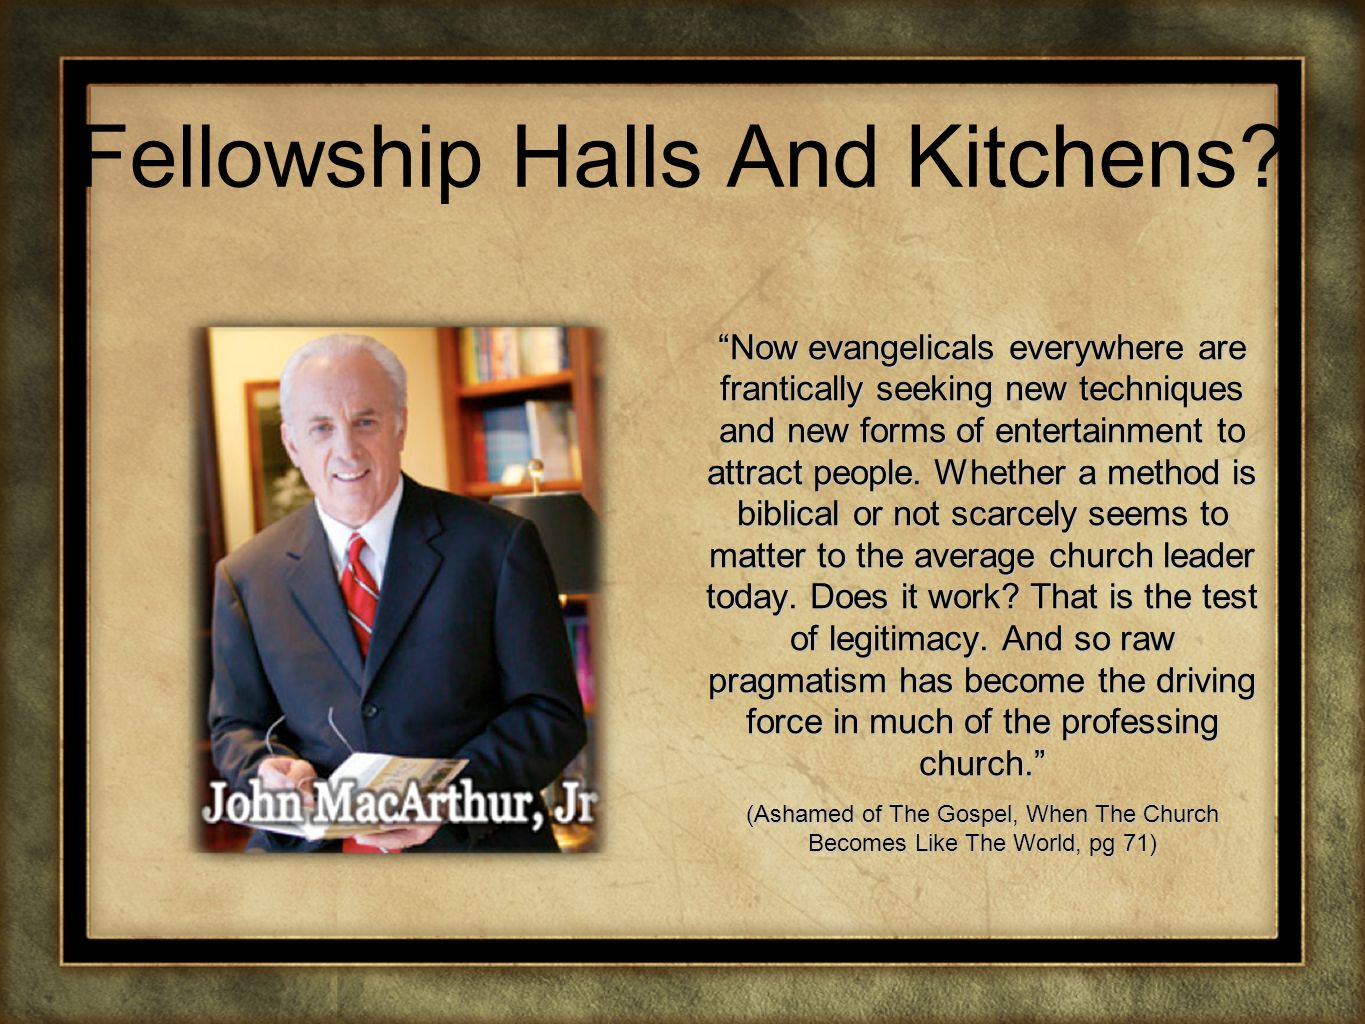 Fellowship Halls And Kitchens? Now evangelicals everywhere are frantically seeking new techniques and new forms of entertainment to attract people. Wh